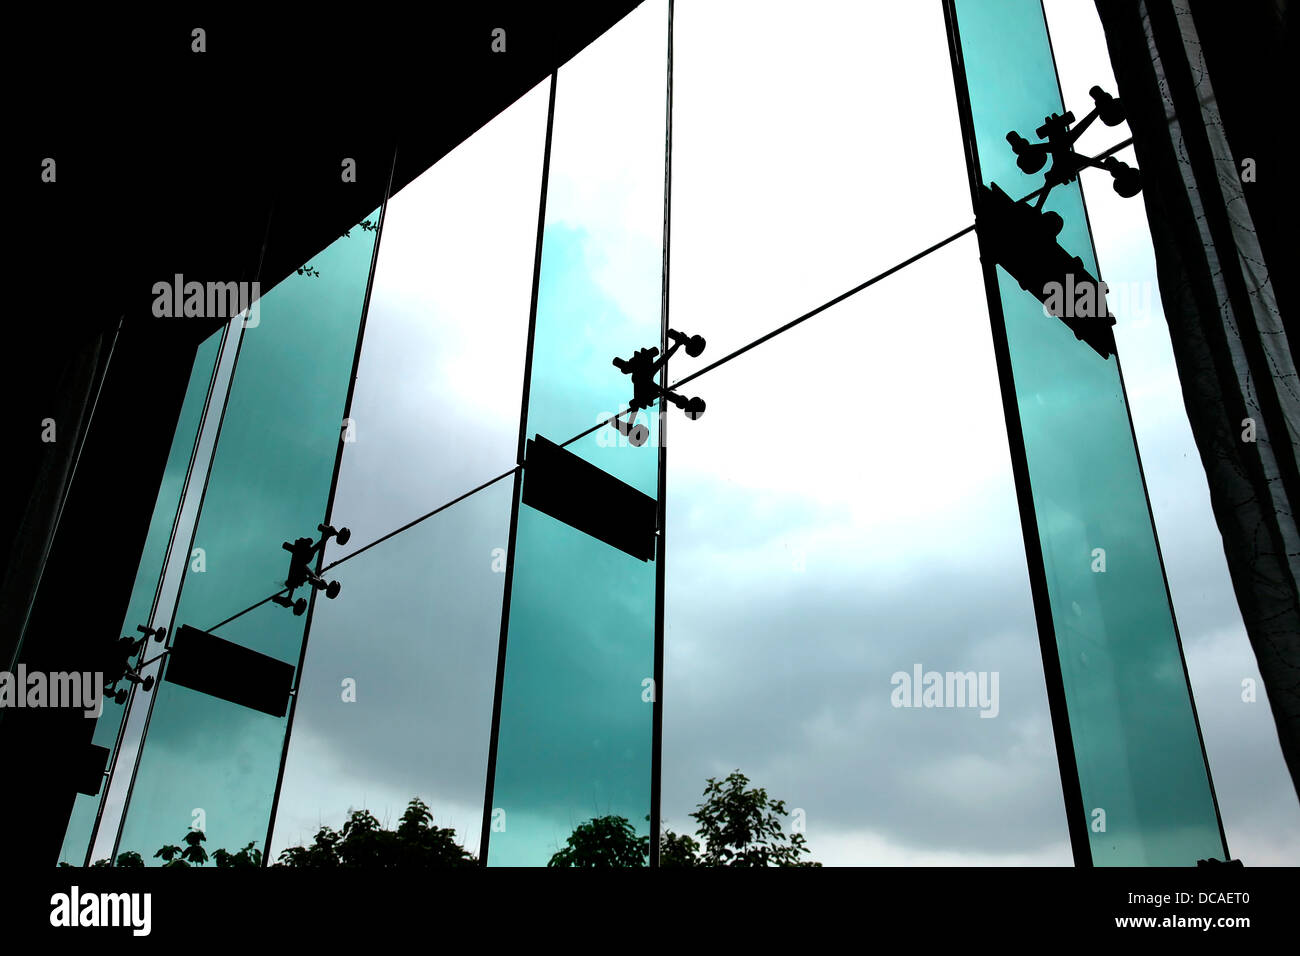 hotel radisson blu interior Agra India hospitality sheet glass structure architecture modern ultramodern contemporary - Stock Image